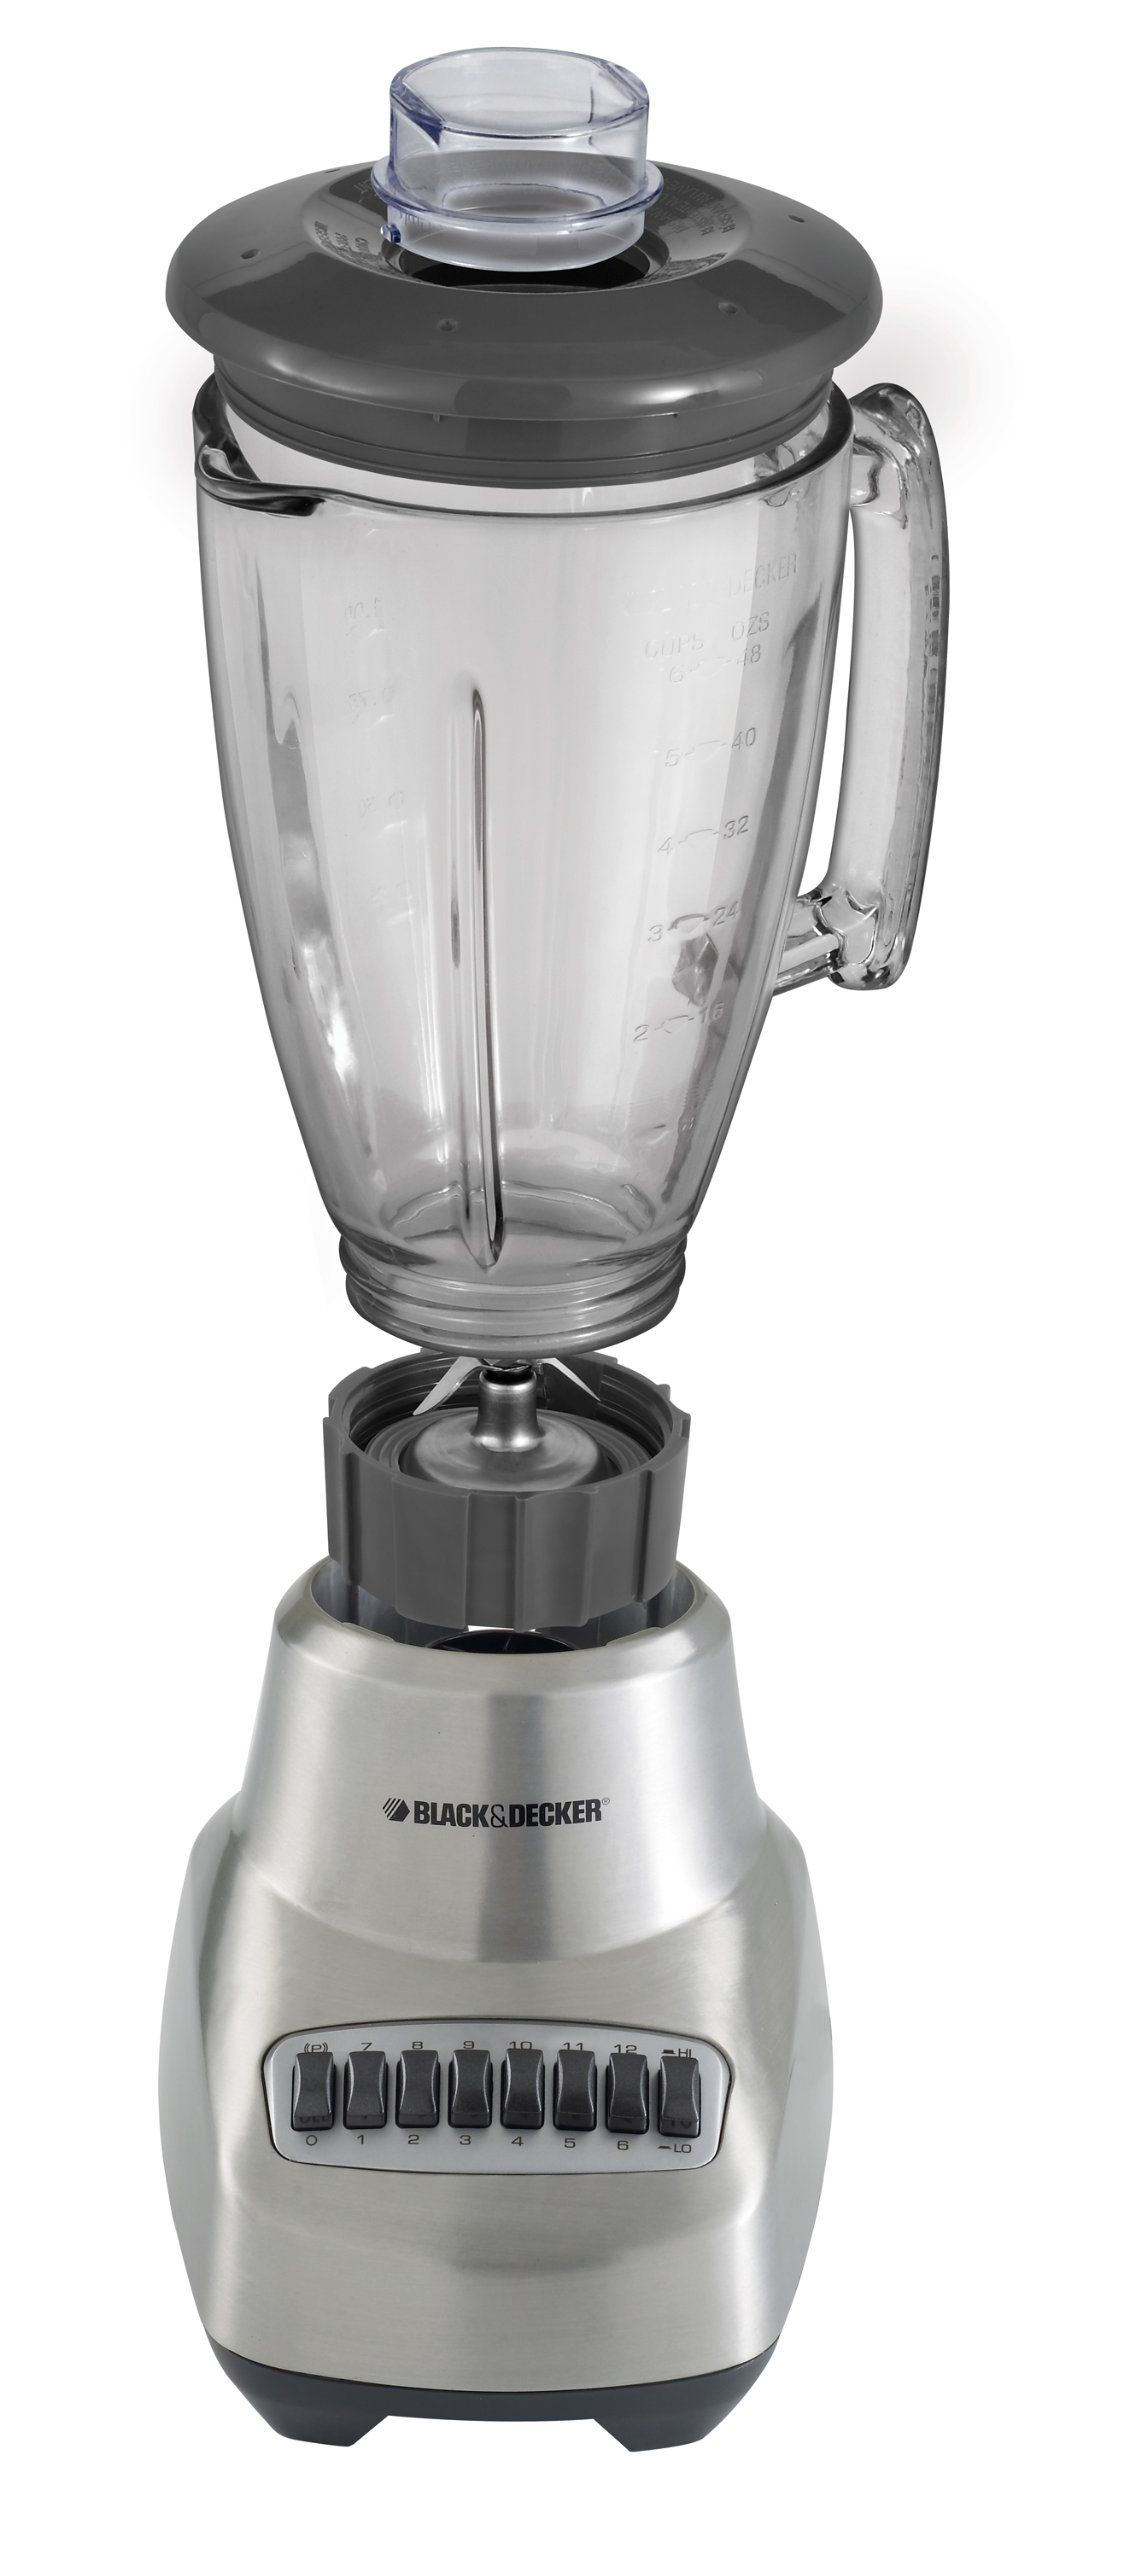 Black decker bl3500s countertop blender with 6cup glass